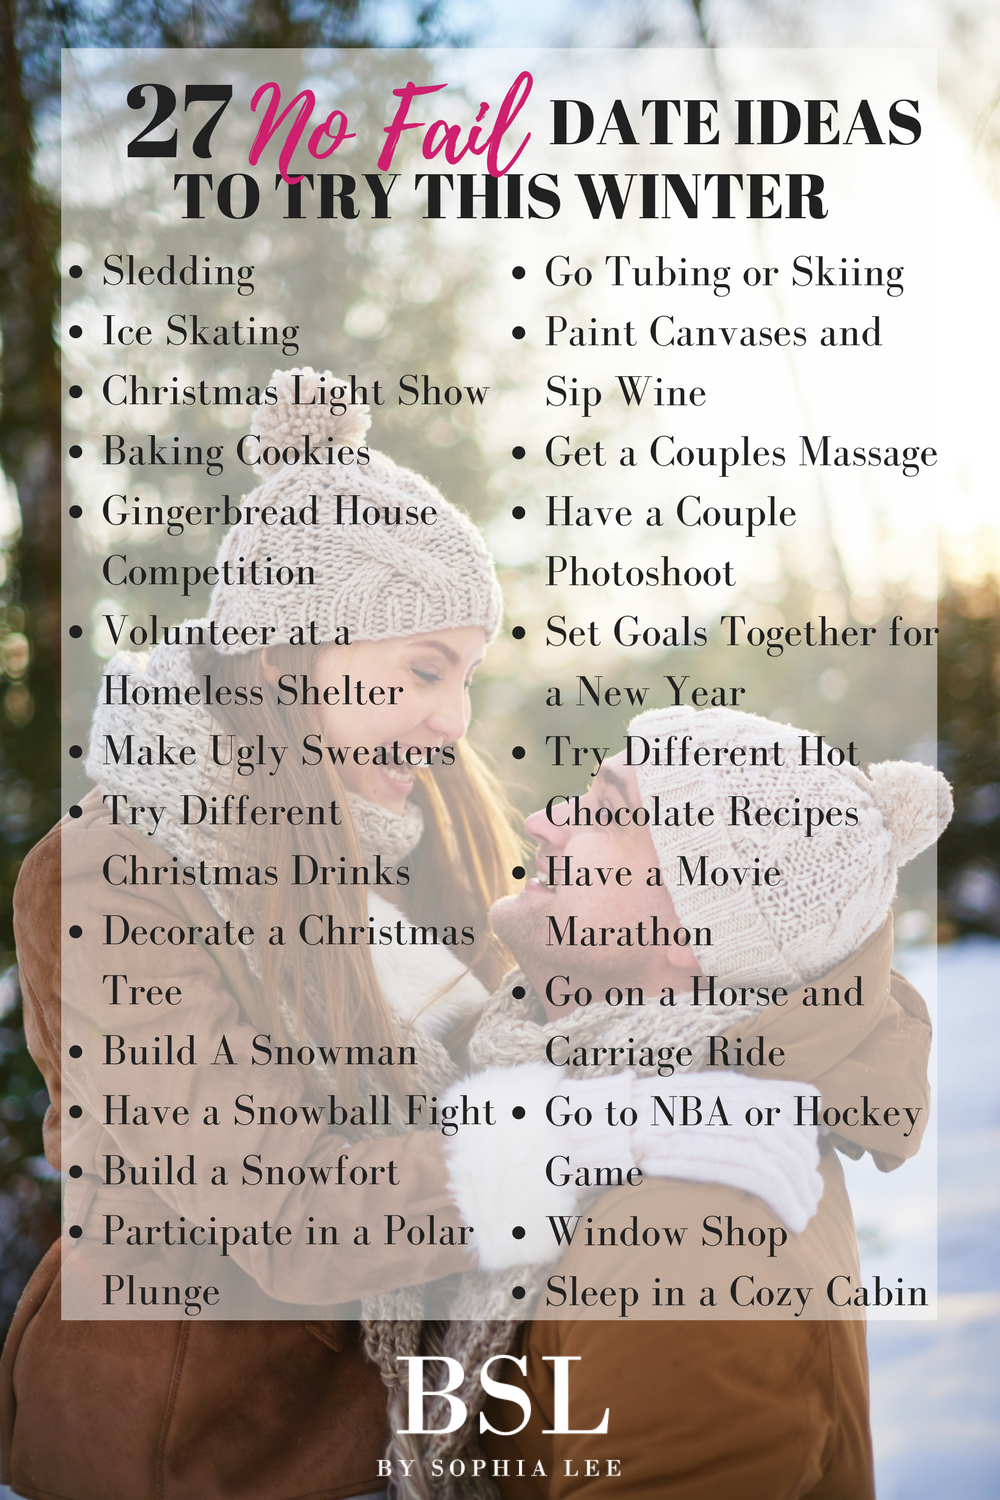 winter date ideas | the influenceher collective | pinterest | winter